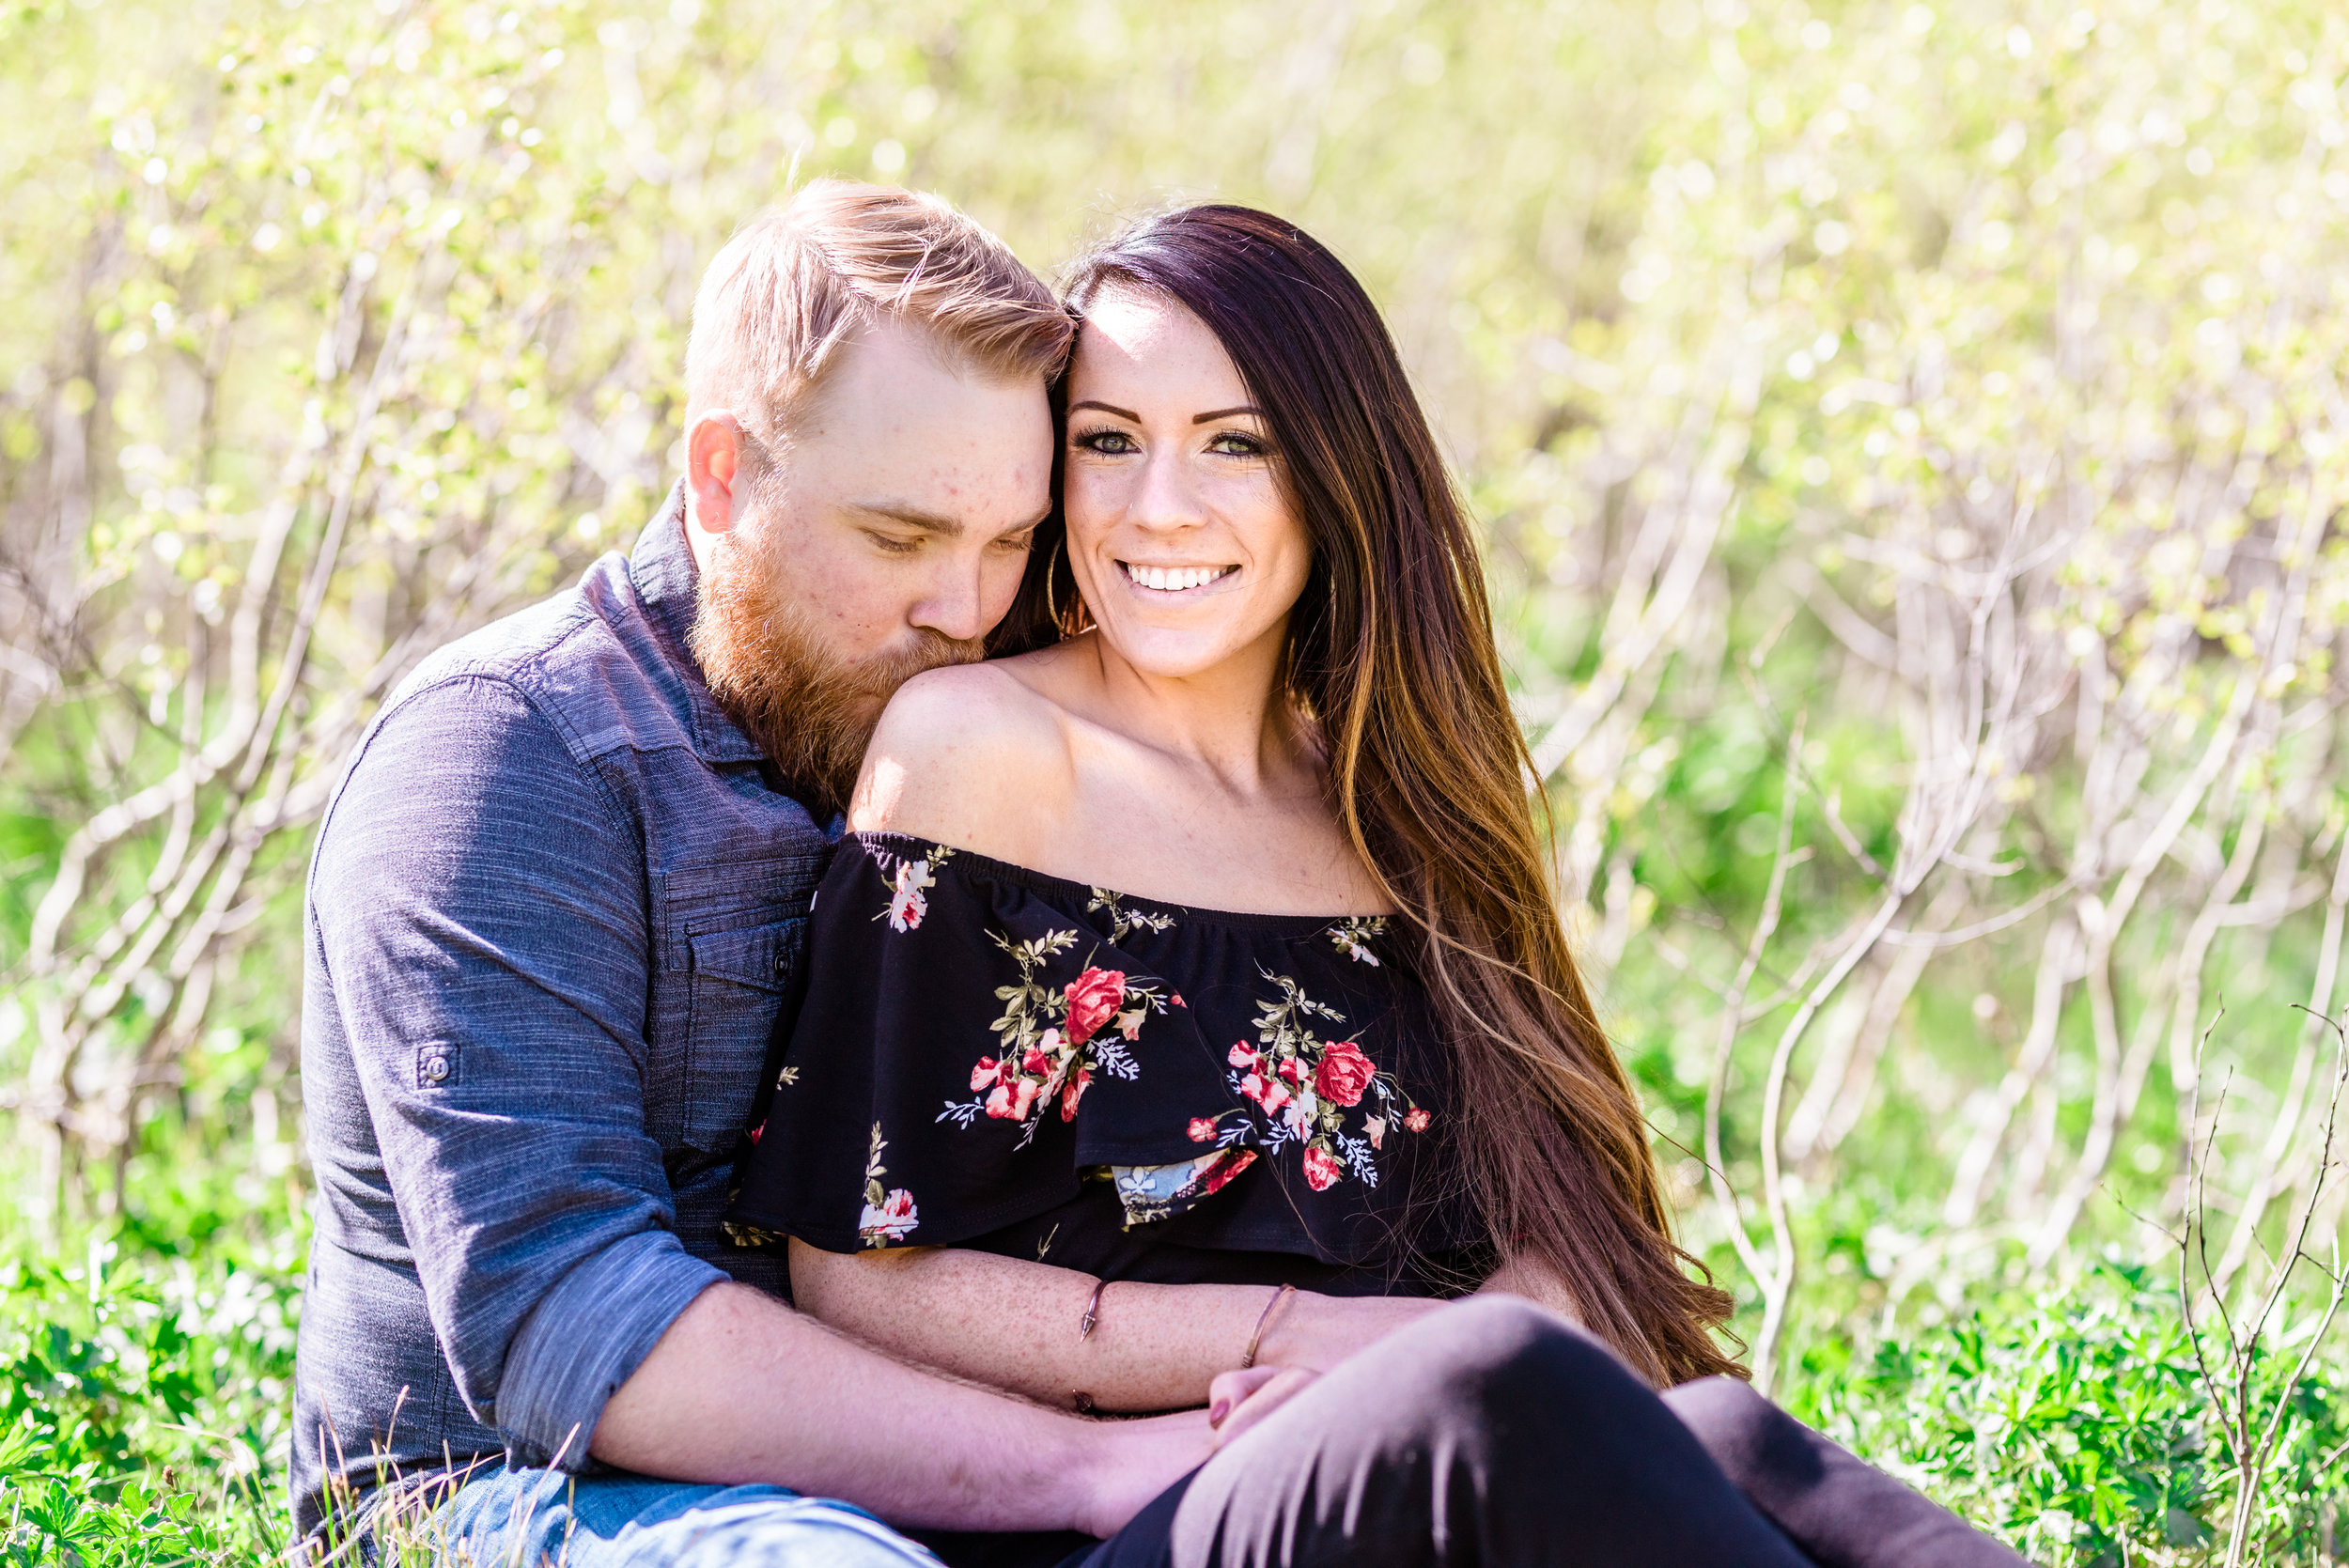 Shoulder kisses are what dreams are made of. Morning engagement session in the Salt Lake mountains. Engagement session at Jordan Pines Campground in Big Cottonwood Canyon.